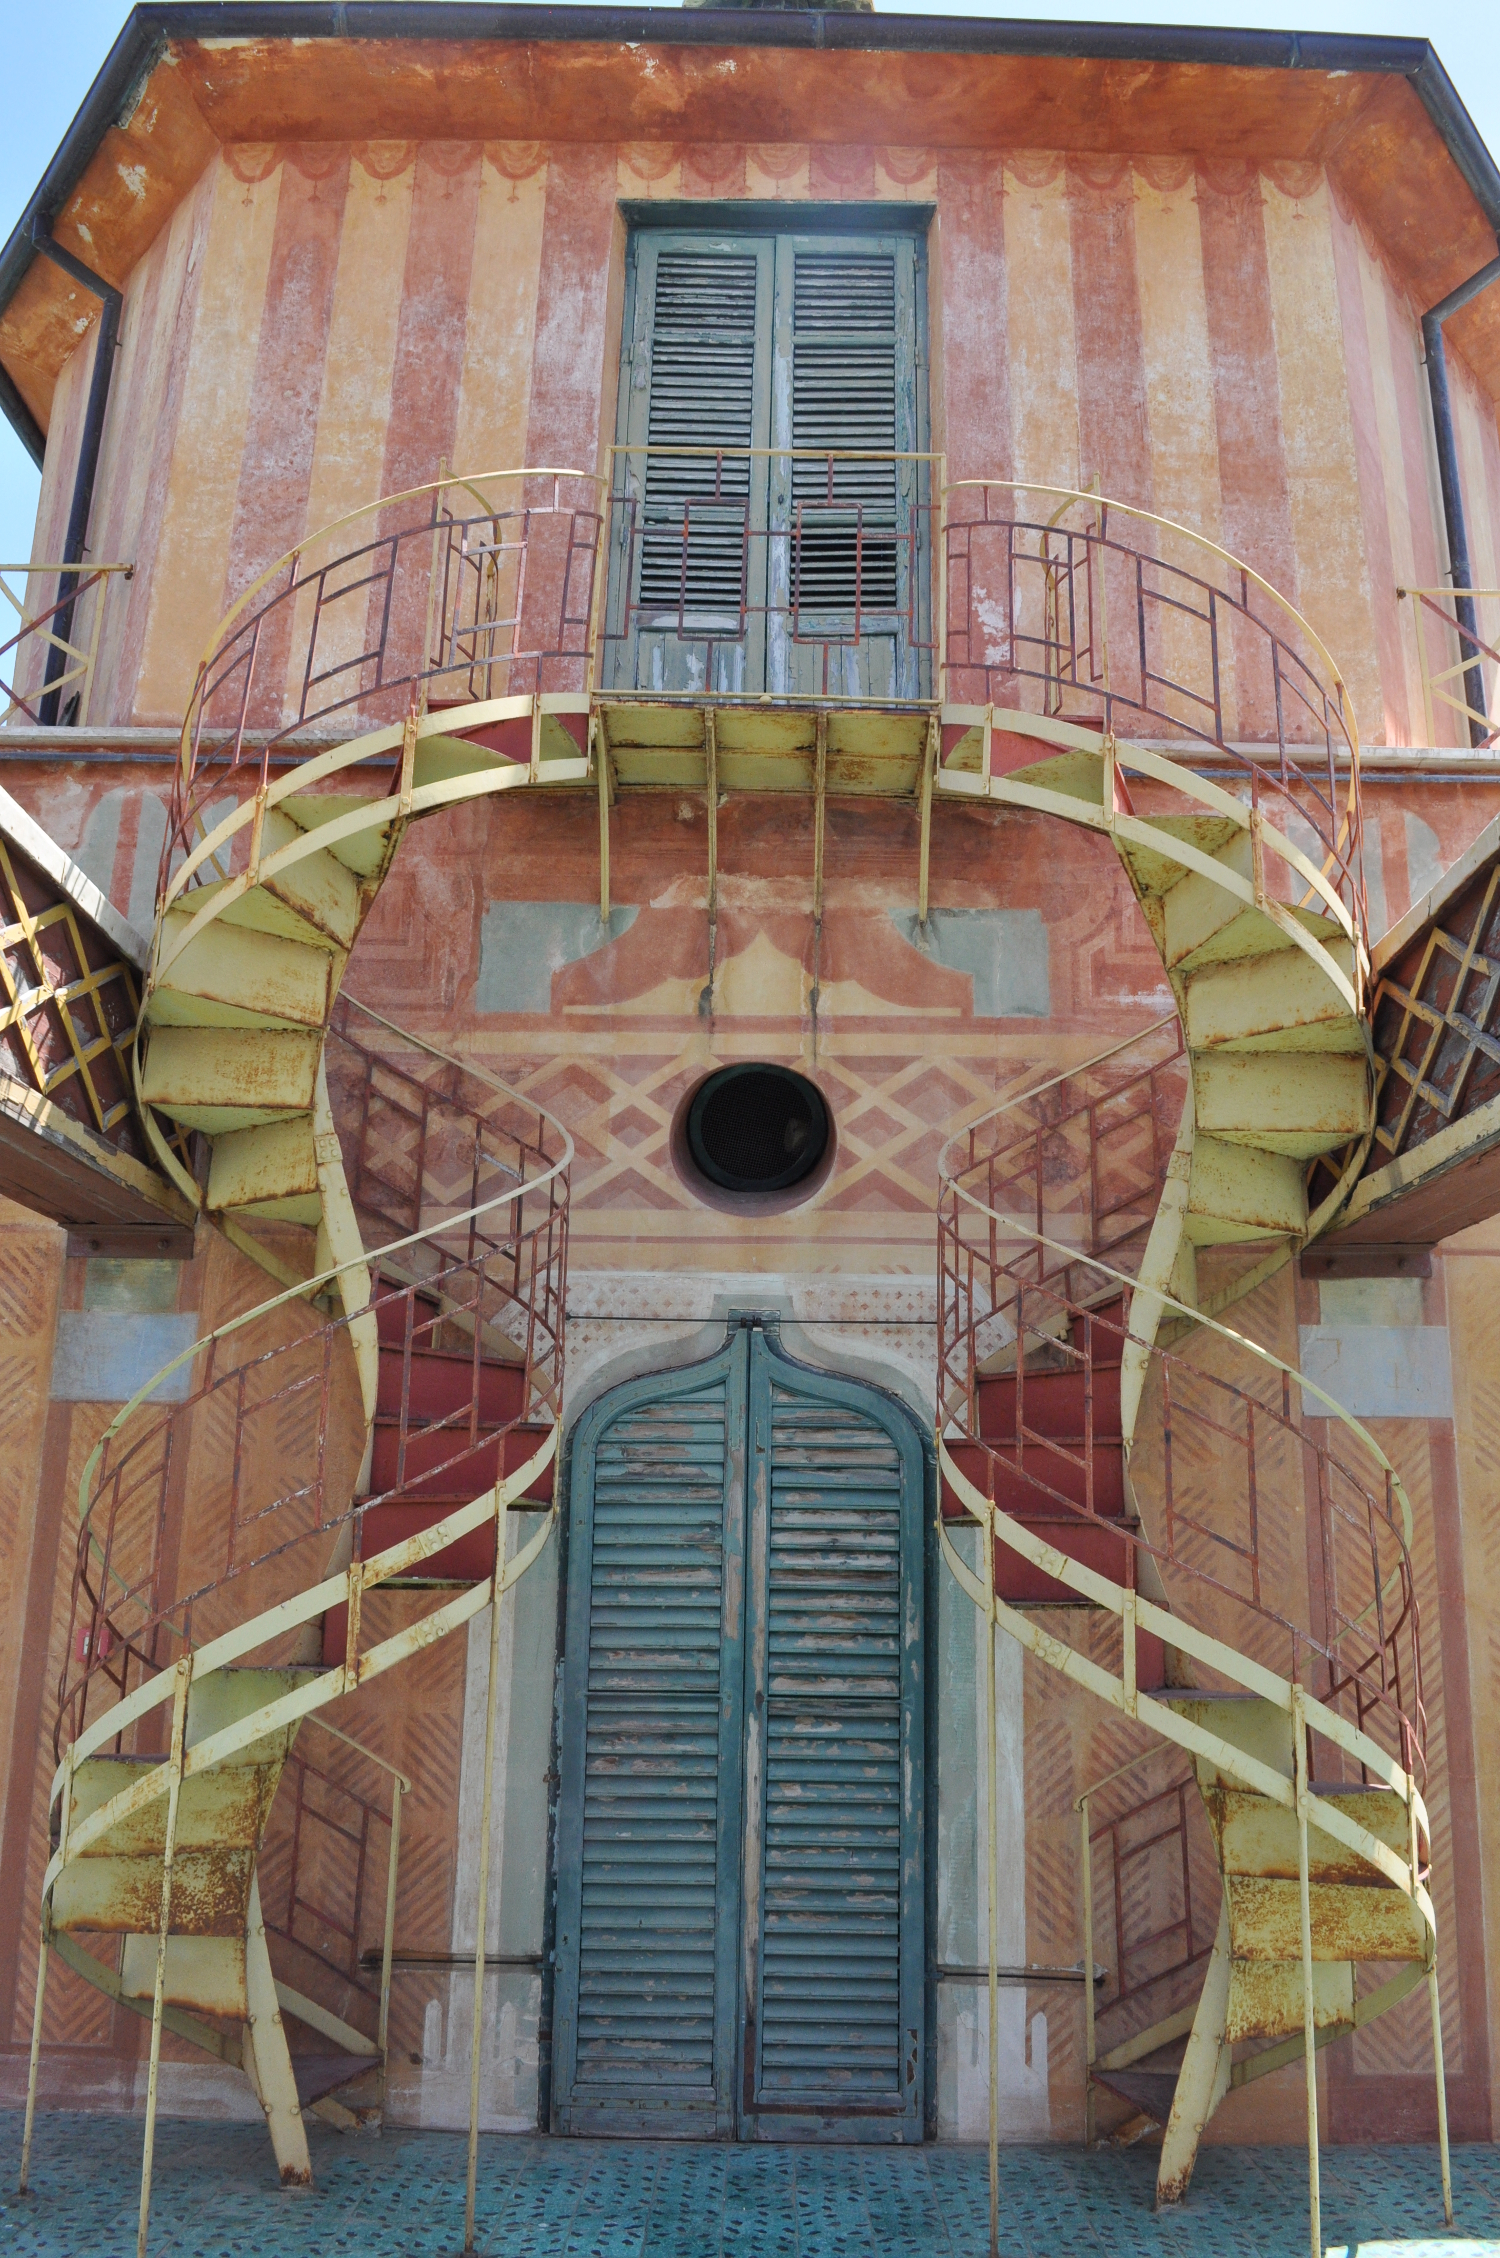 rocaille-blog-palazzina-cinese-palermo-35